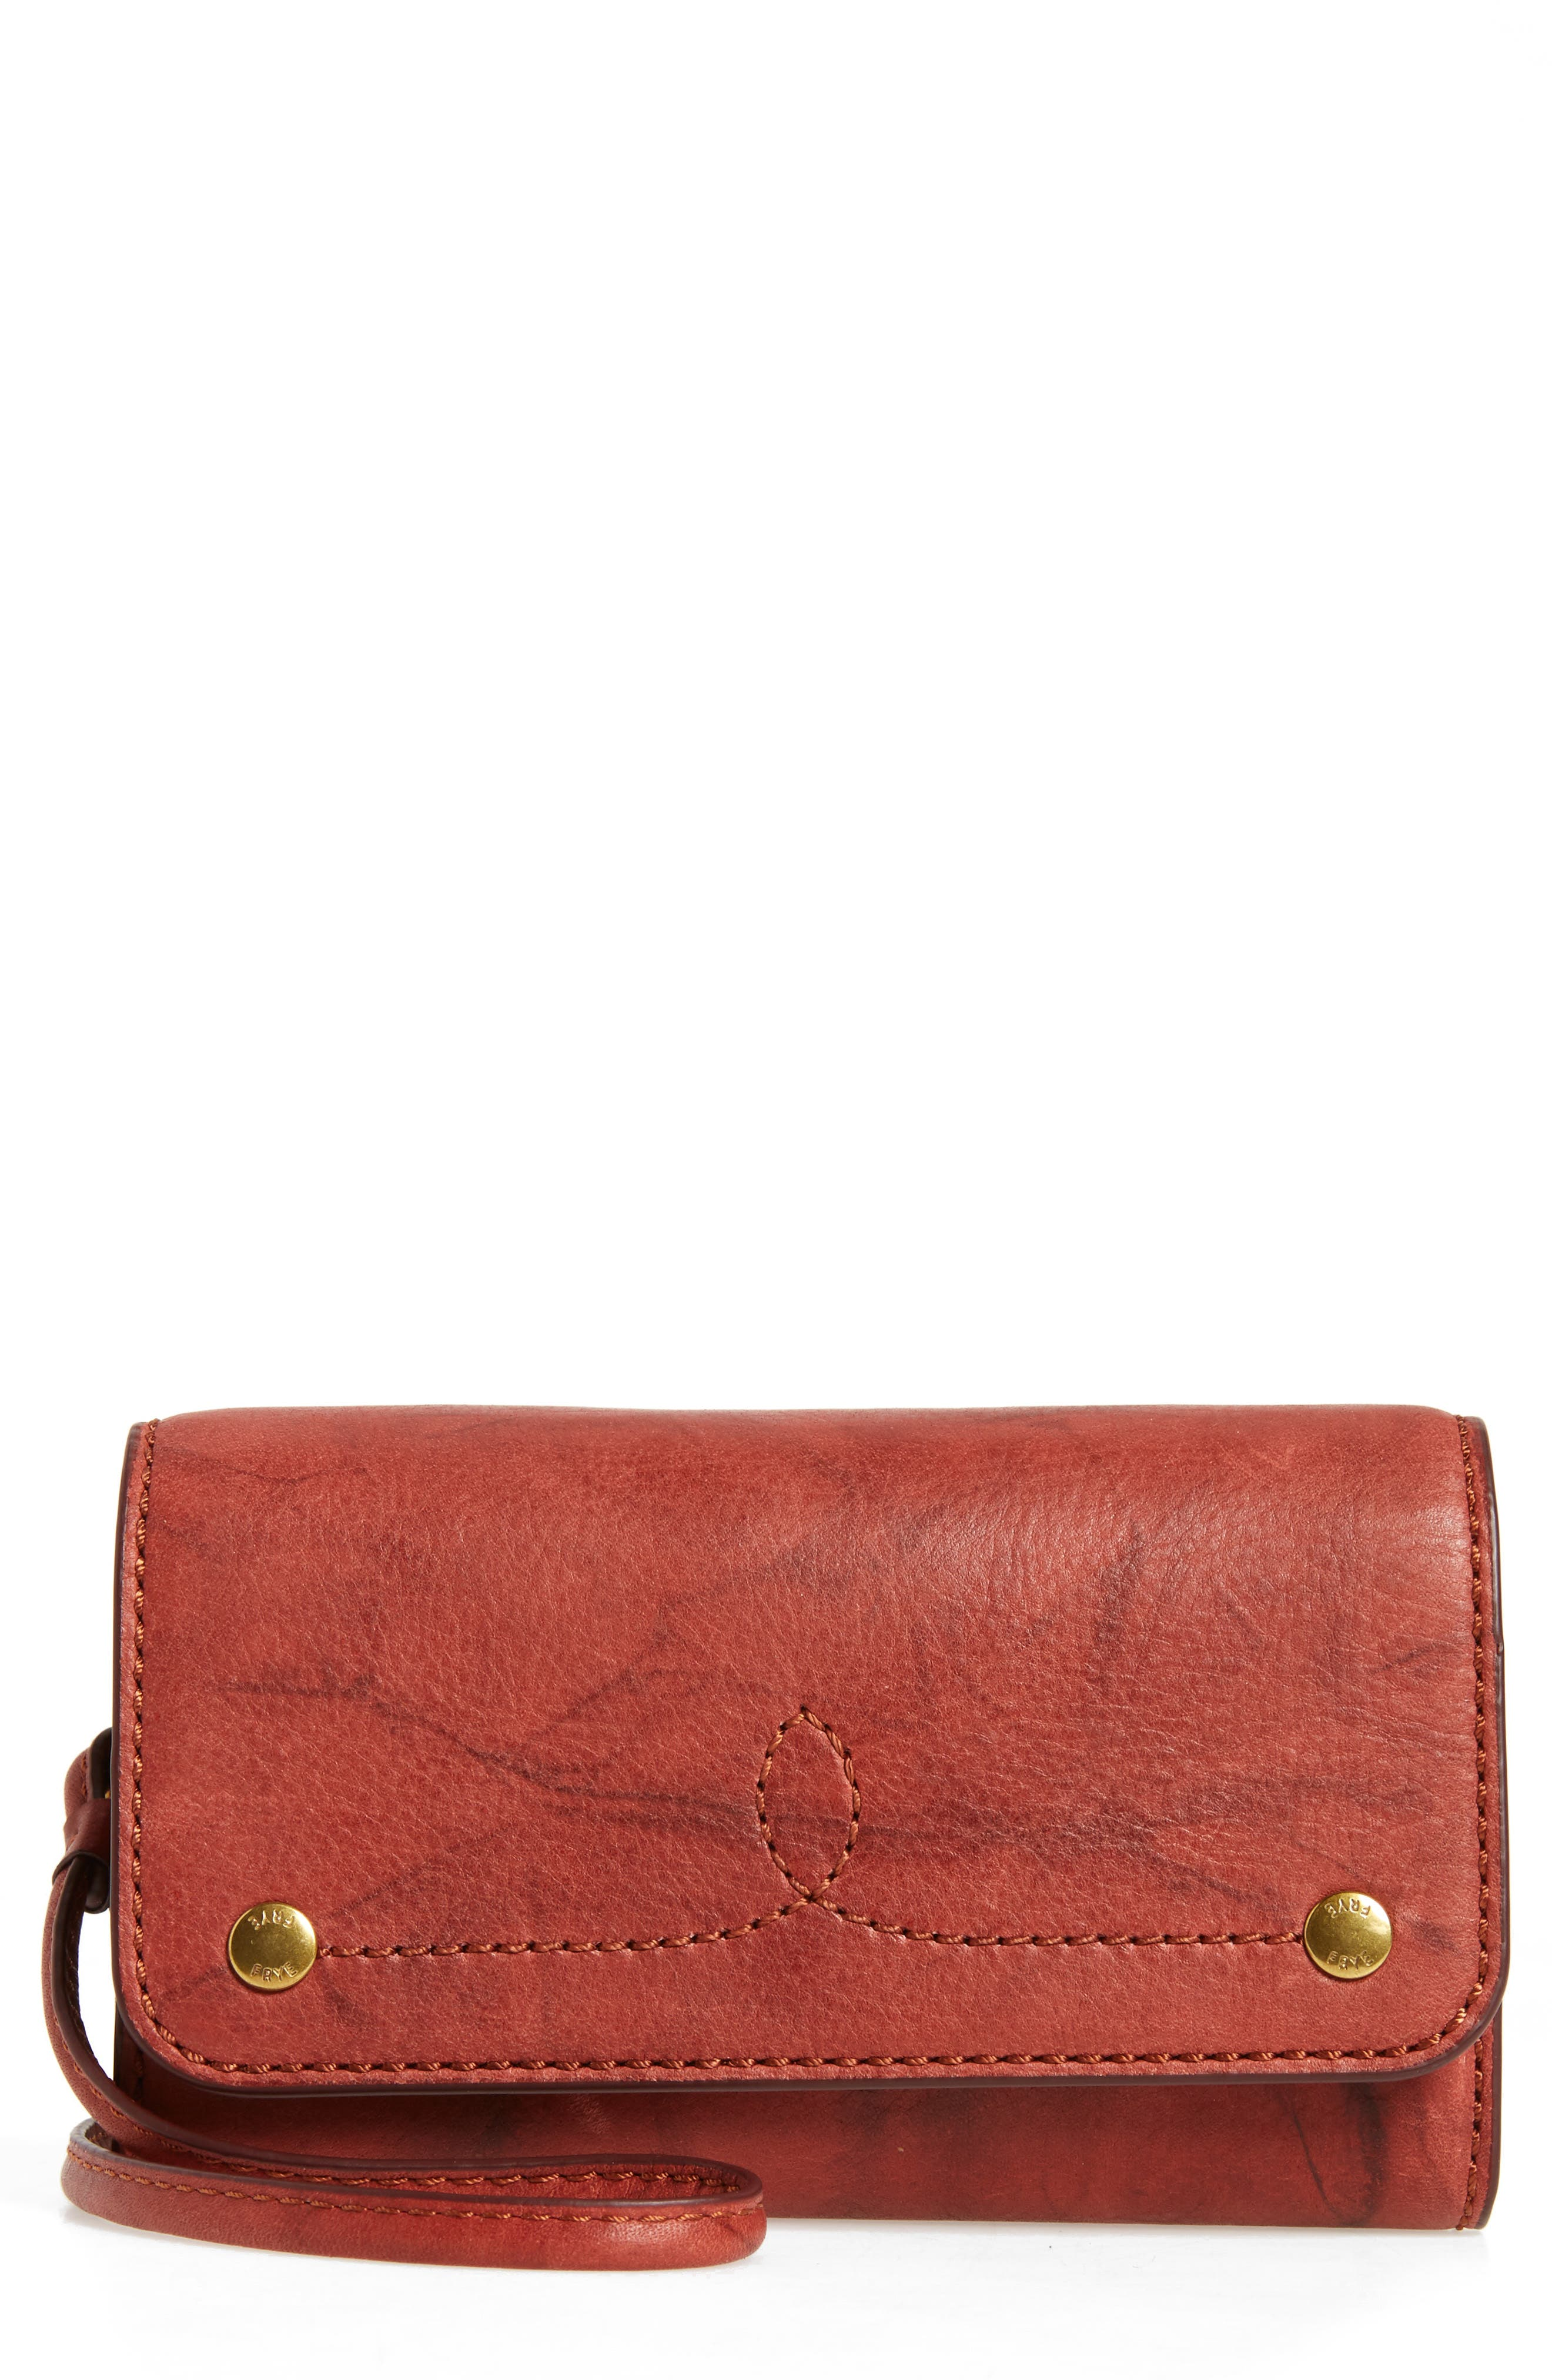 Main Image - Frye Campus Rivet Leather Smartphone Wallet with Crossbody Strap